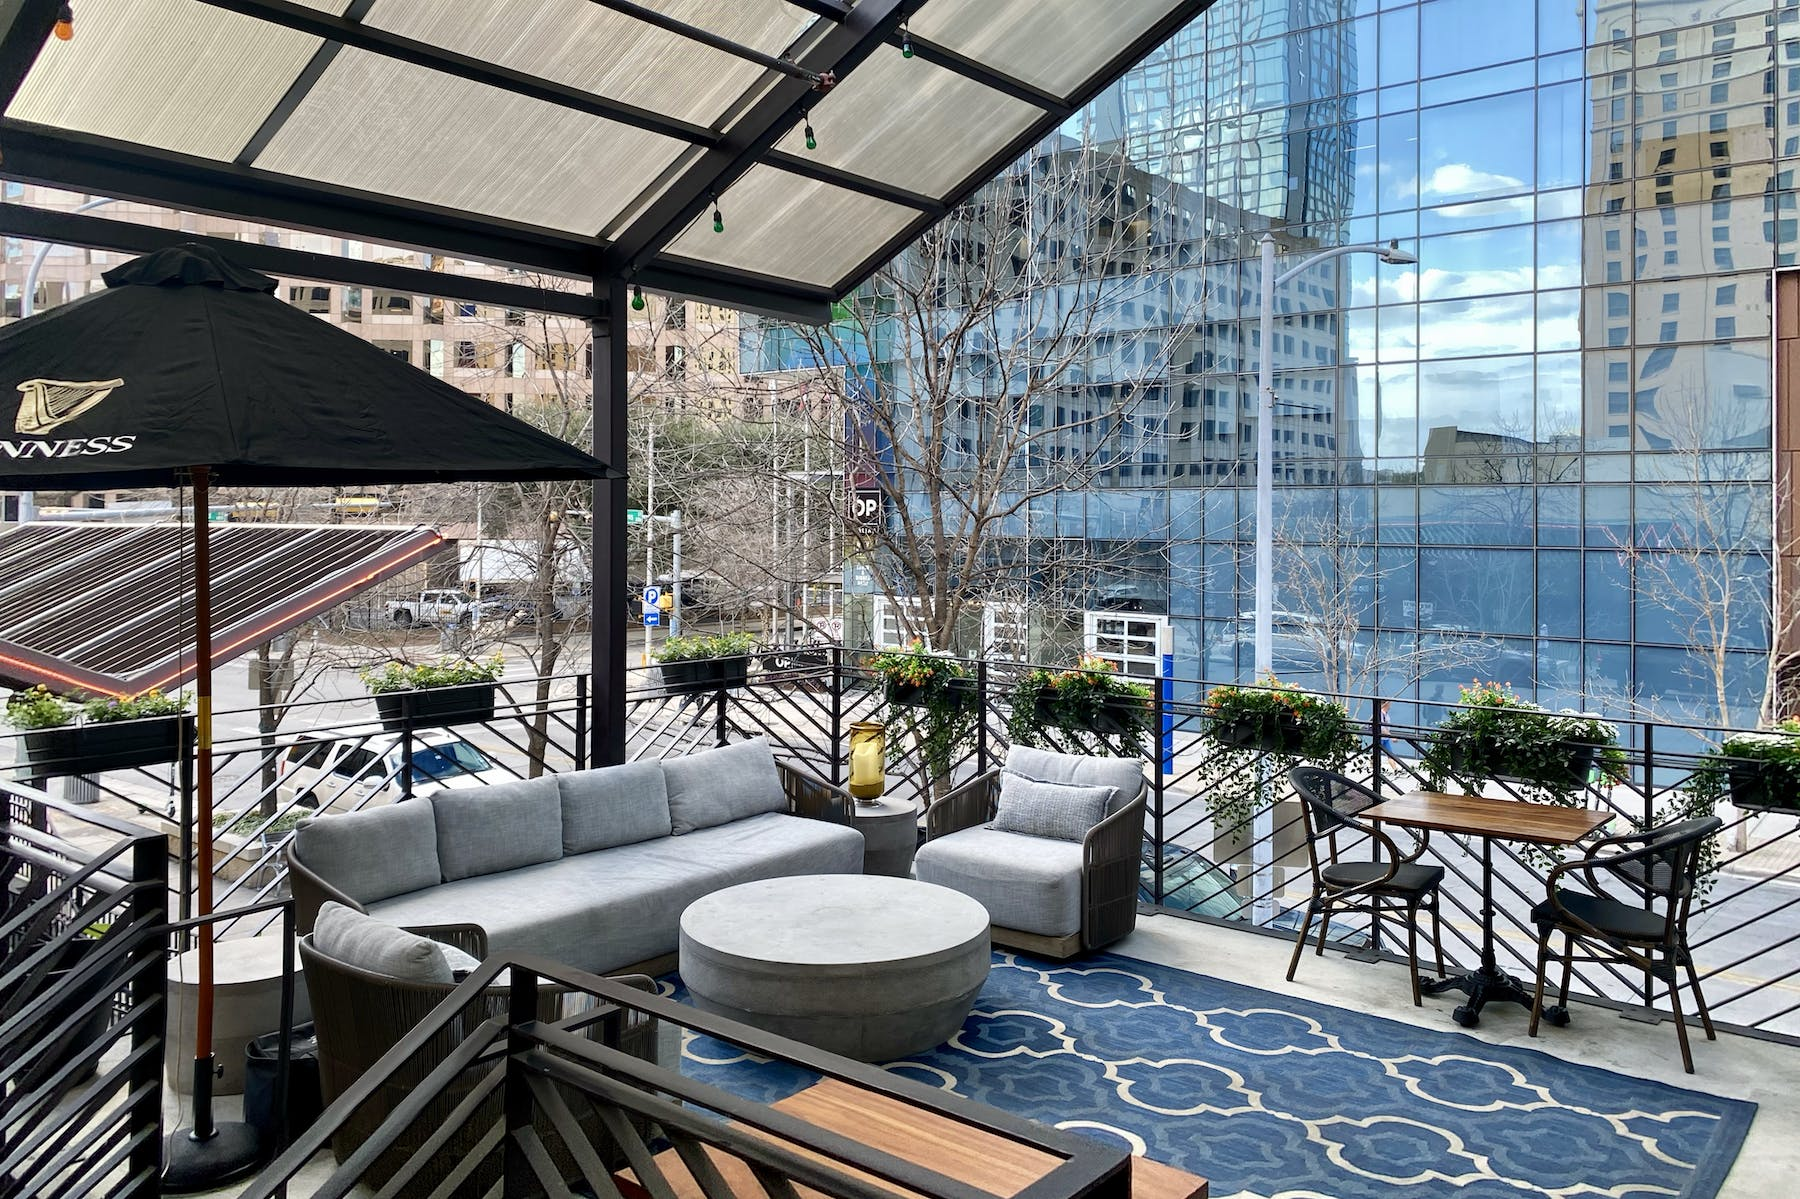 outdoor lounge event space